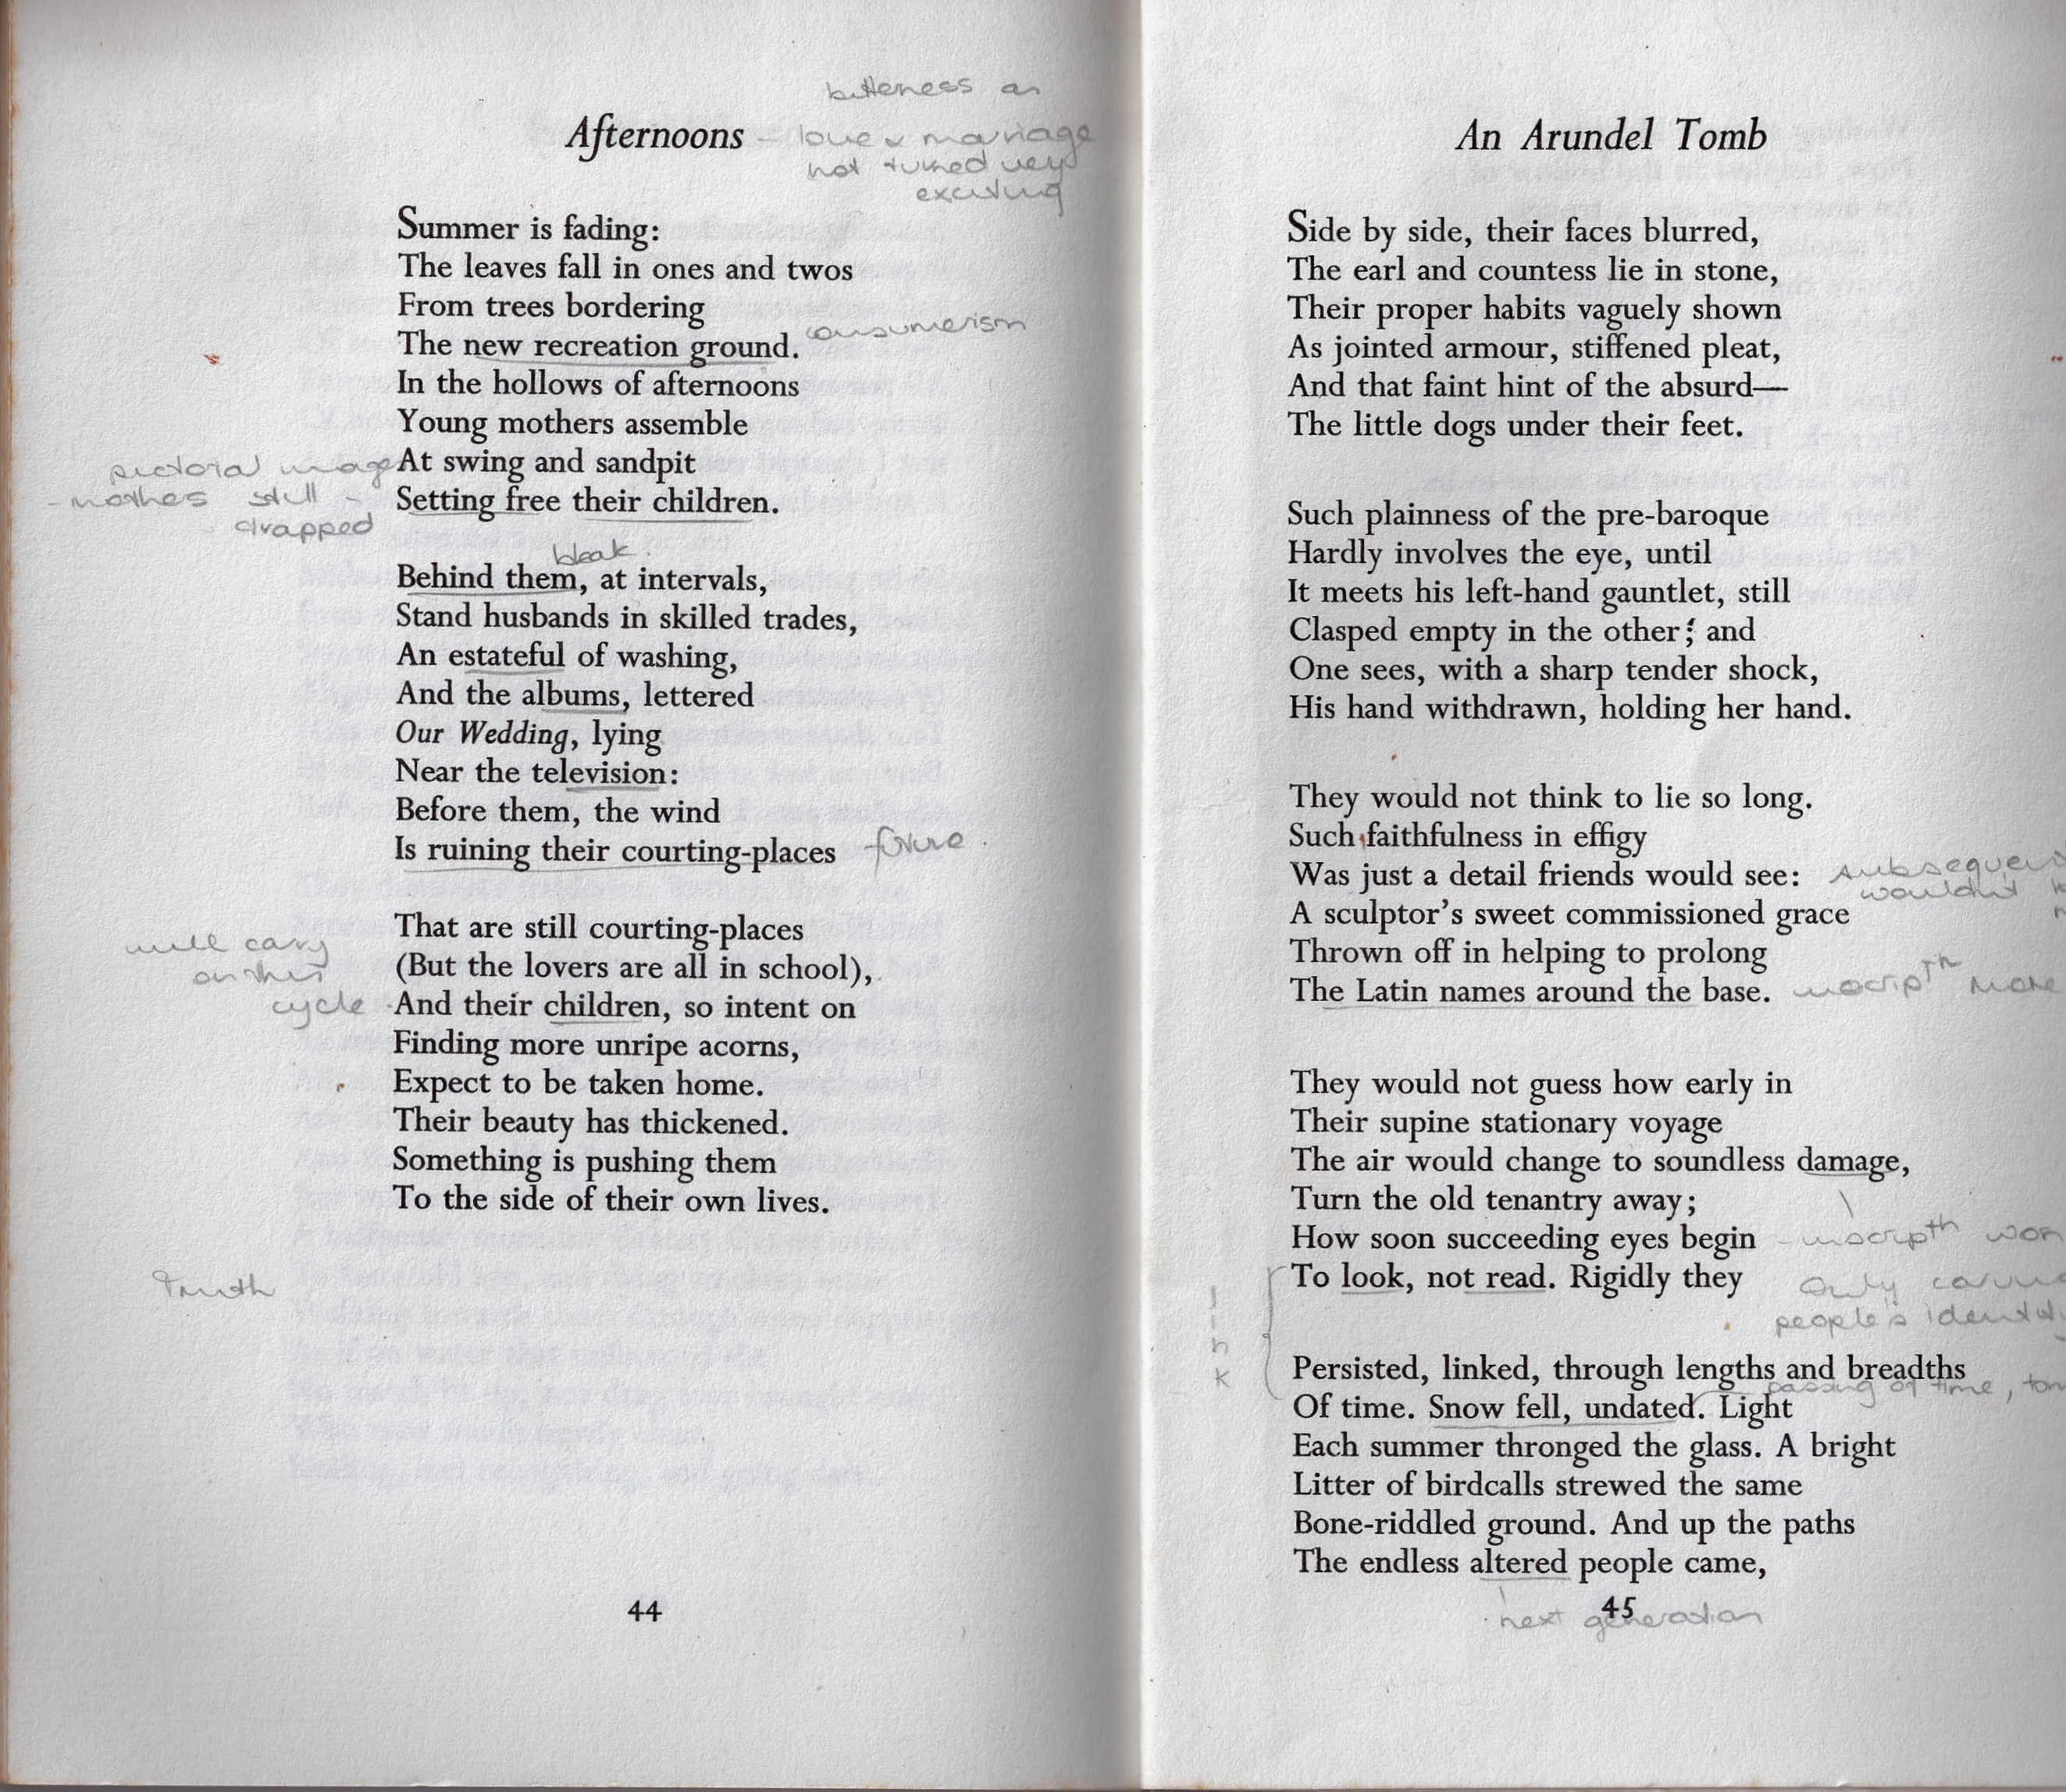 sonnet on the death of mr. richard west essay Thomas gray's sonnet on the death of mr richard west essay sample the masque of the red death catcher in the rye - study notes as a related text for belonging essay.